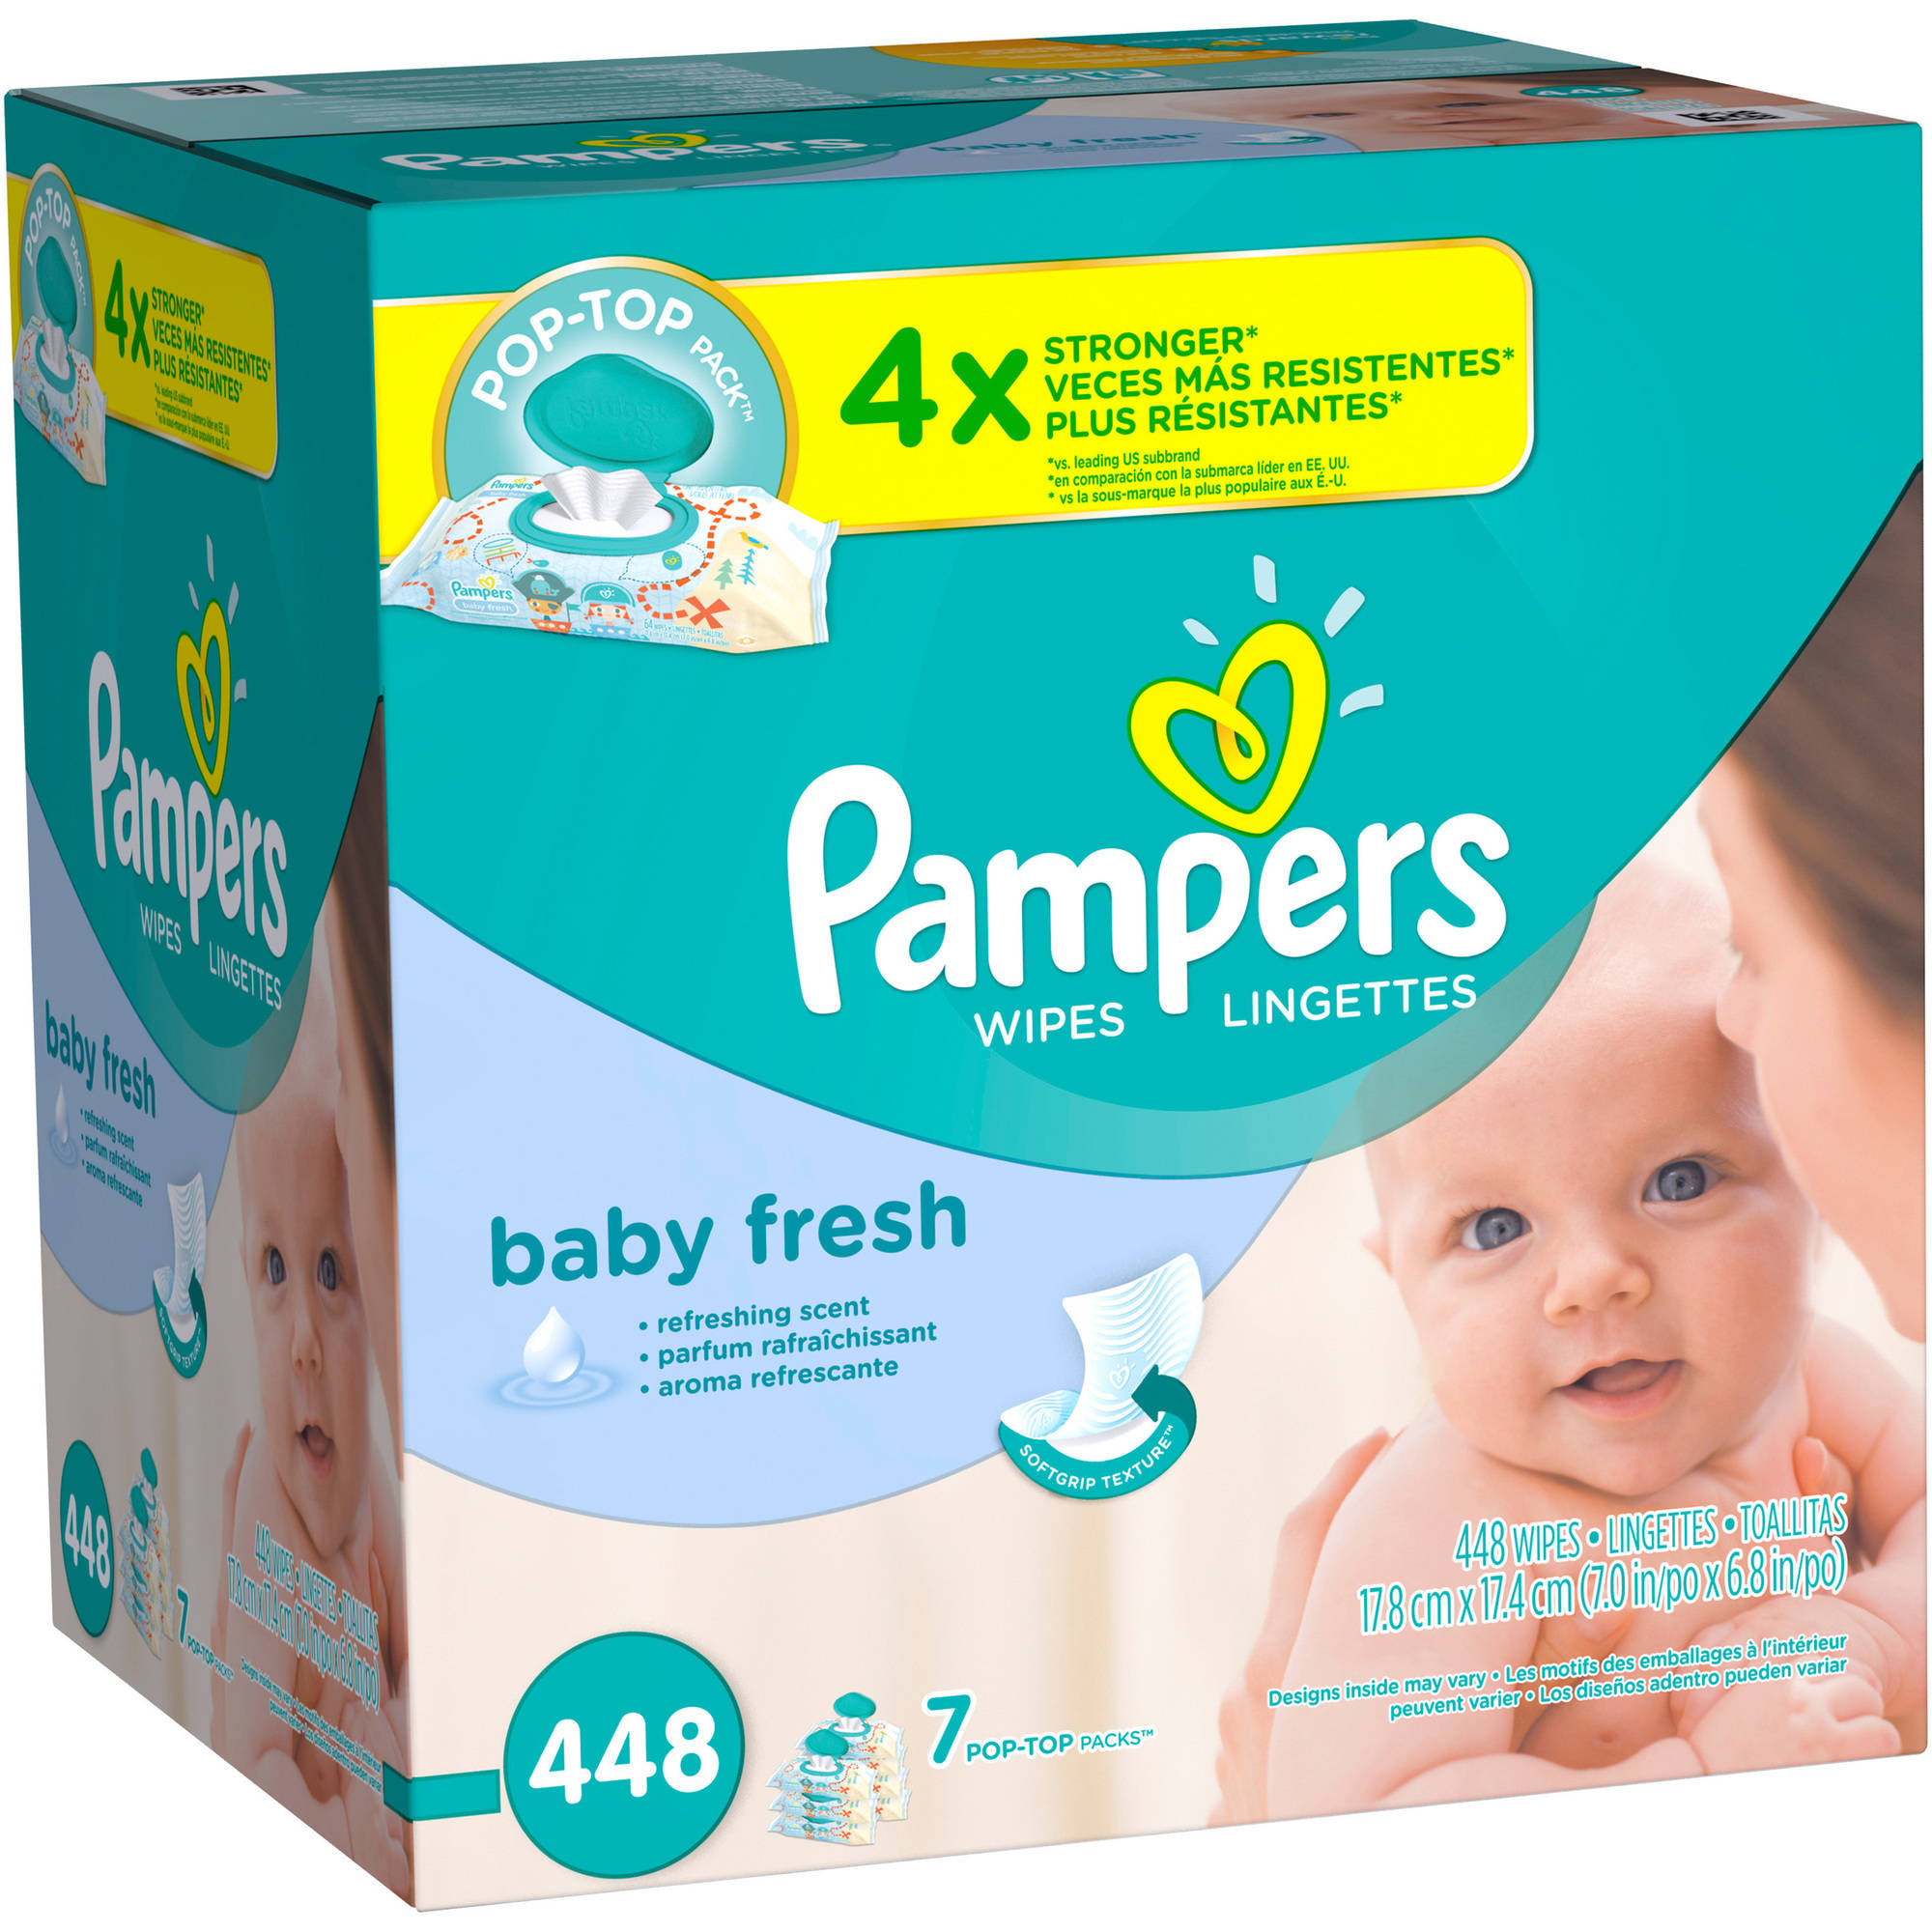 Pampers Baby Fresh Wipes, 448 Wipes